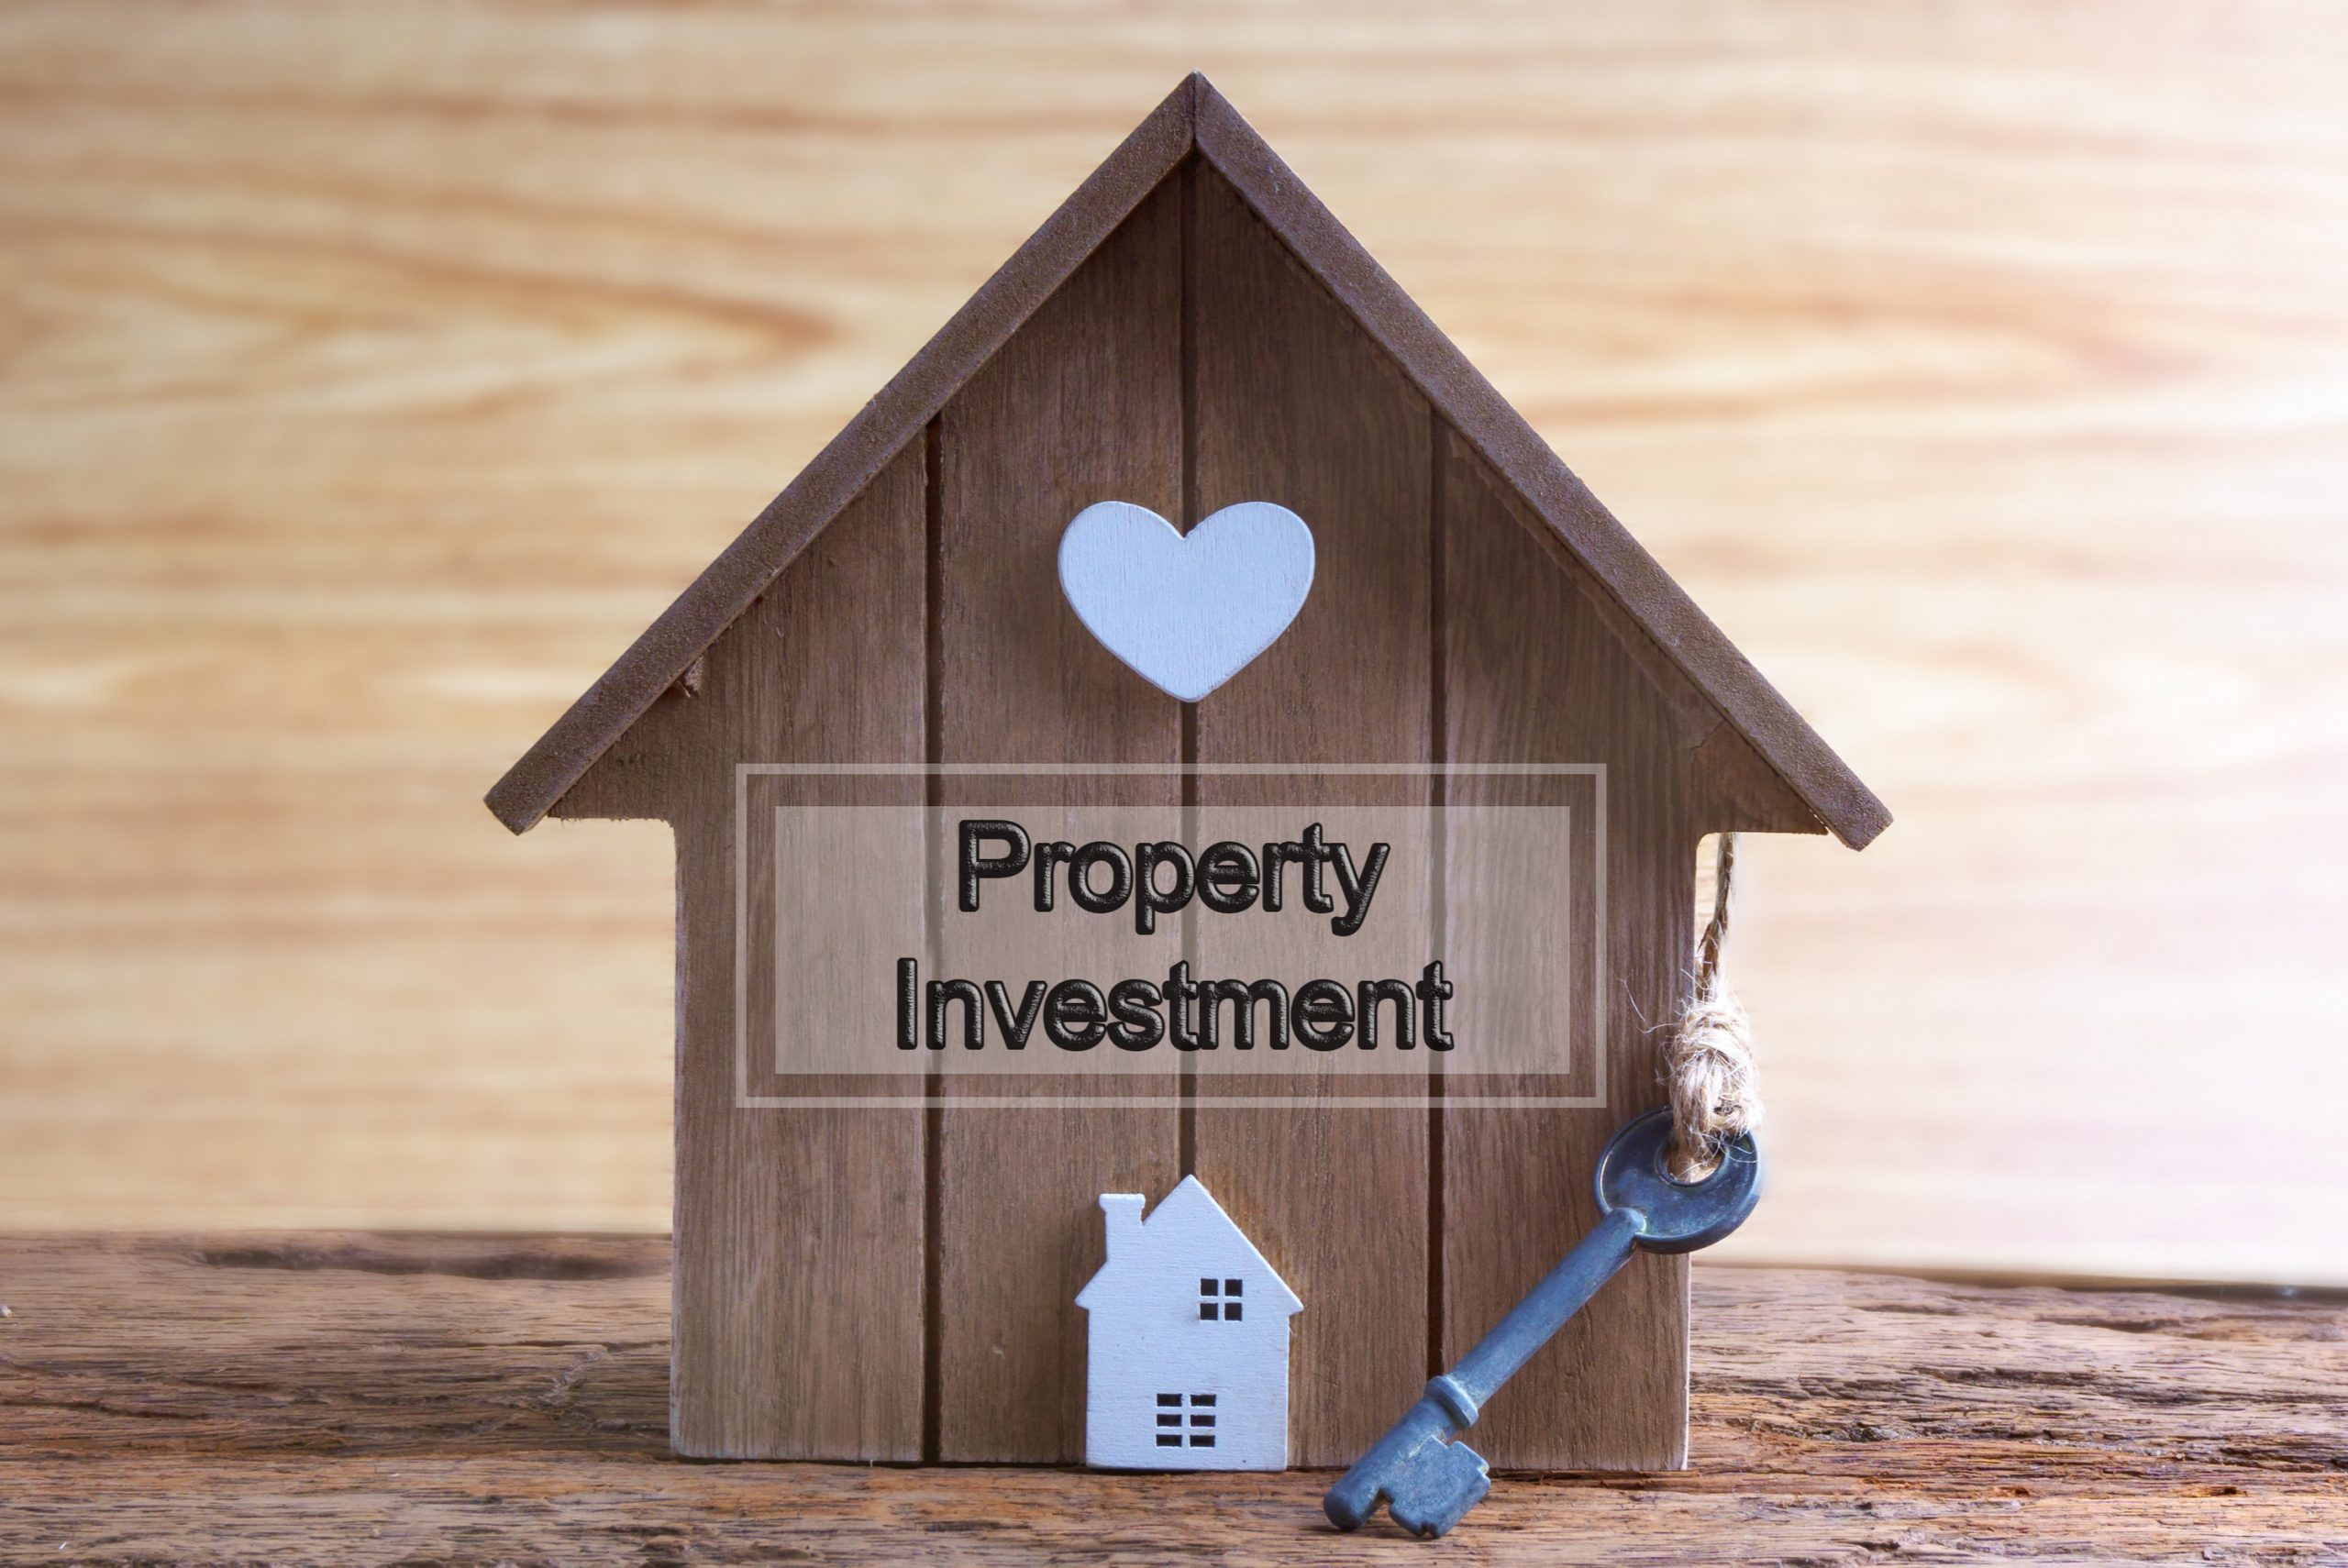 How do I start investing in property?